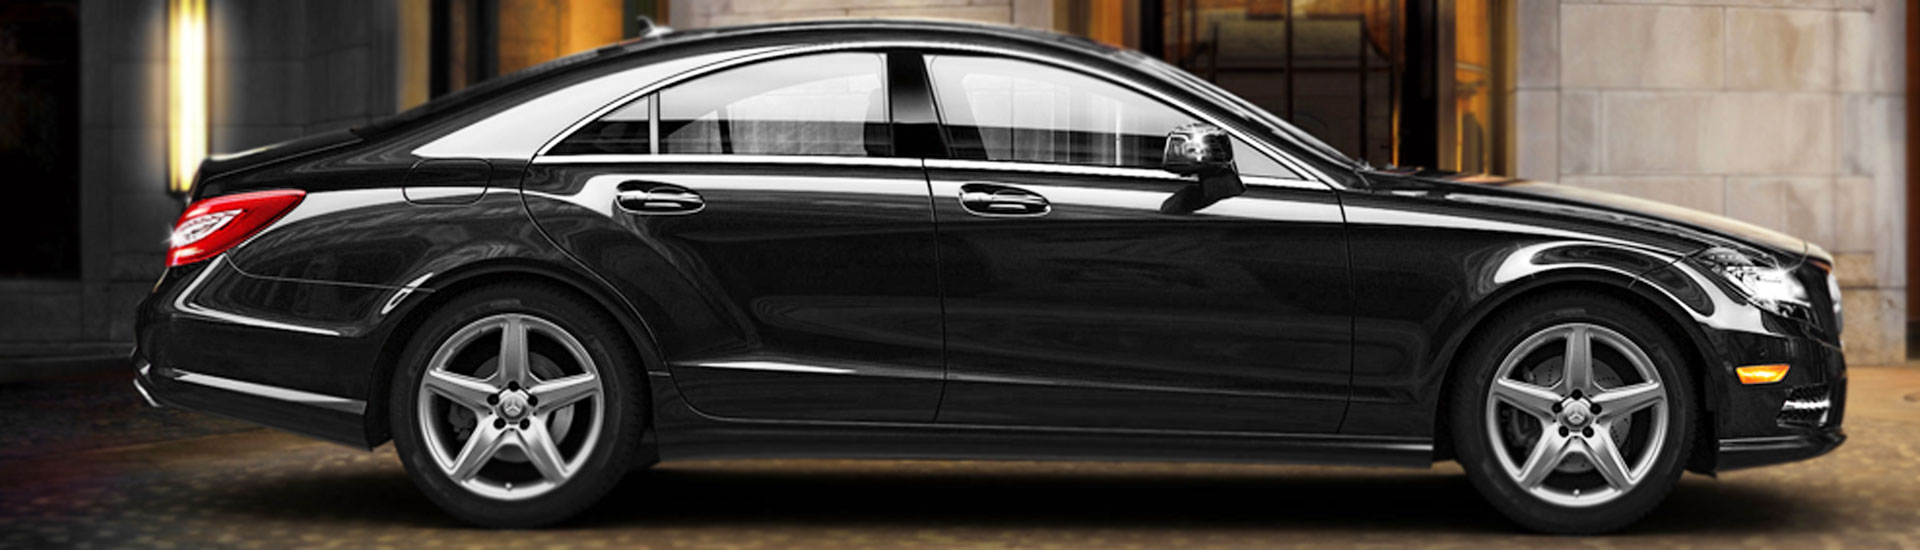 Mercedes benz cl class window tint kit diy precut for Mercedes benz window tint